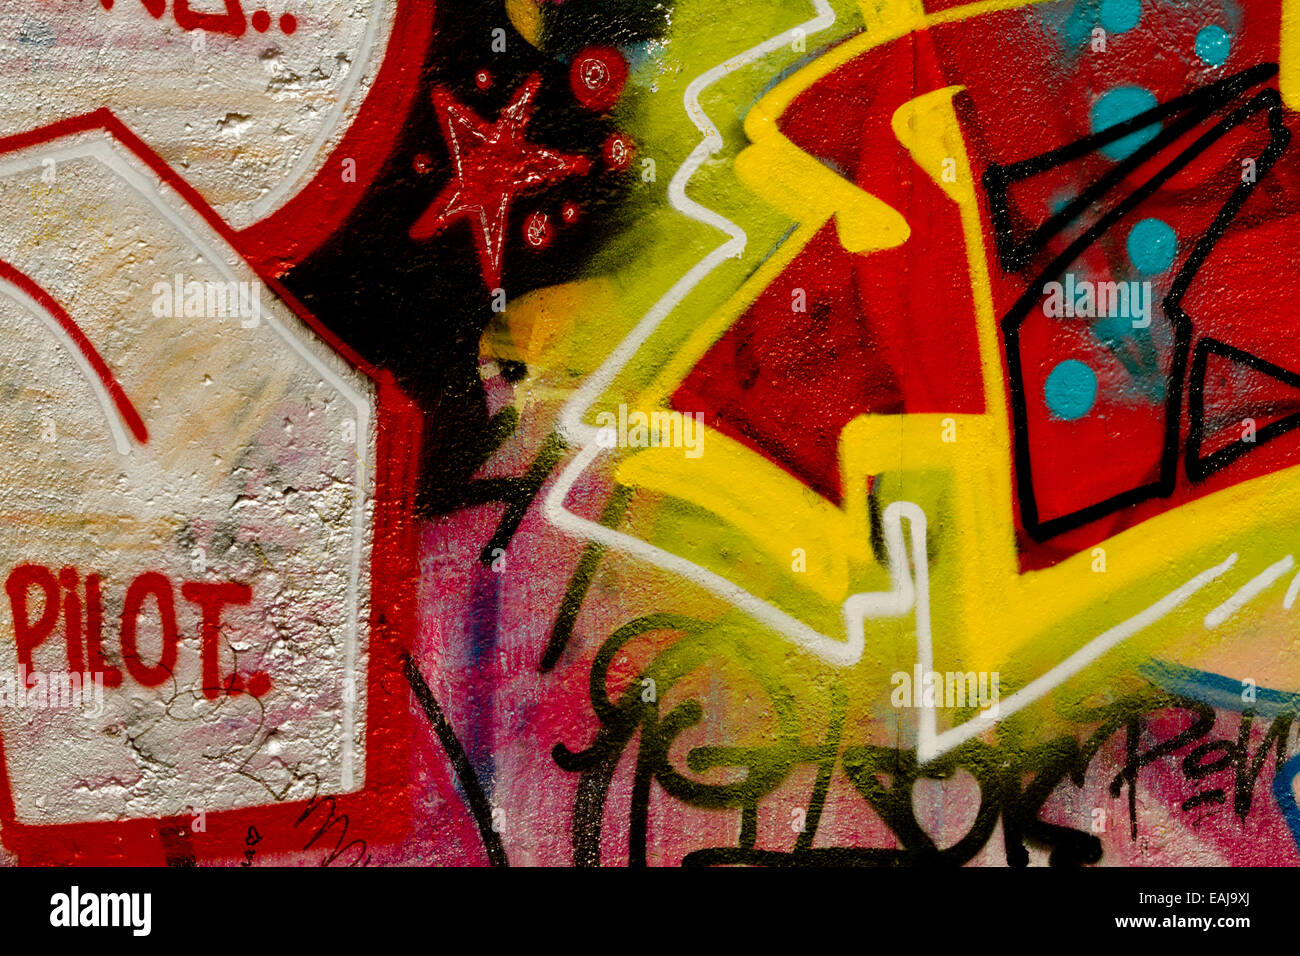 Graffiti Tag Urban Berlin Wall Stock Photos & Graffiti Tag Urban ...